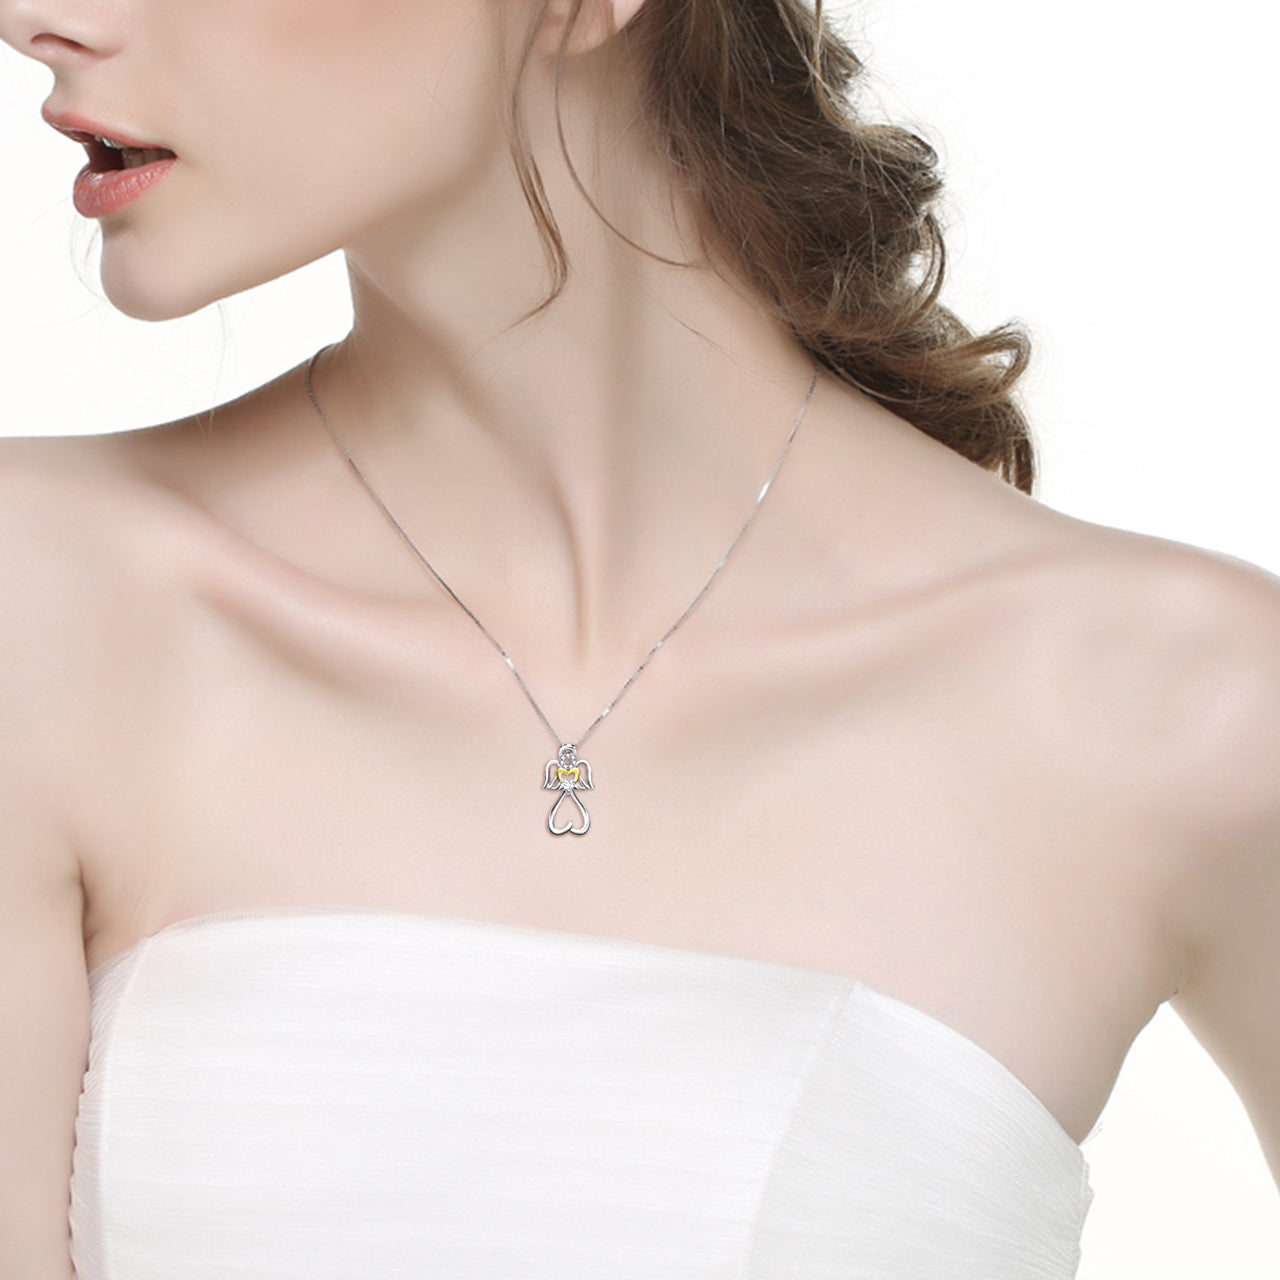 Angel sterling silver necklace  kind and lovely jewelry women necklace